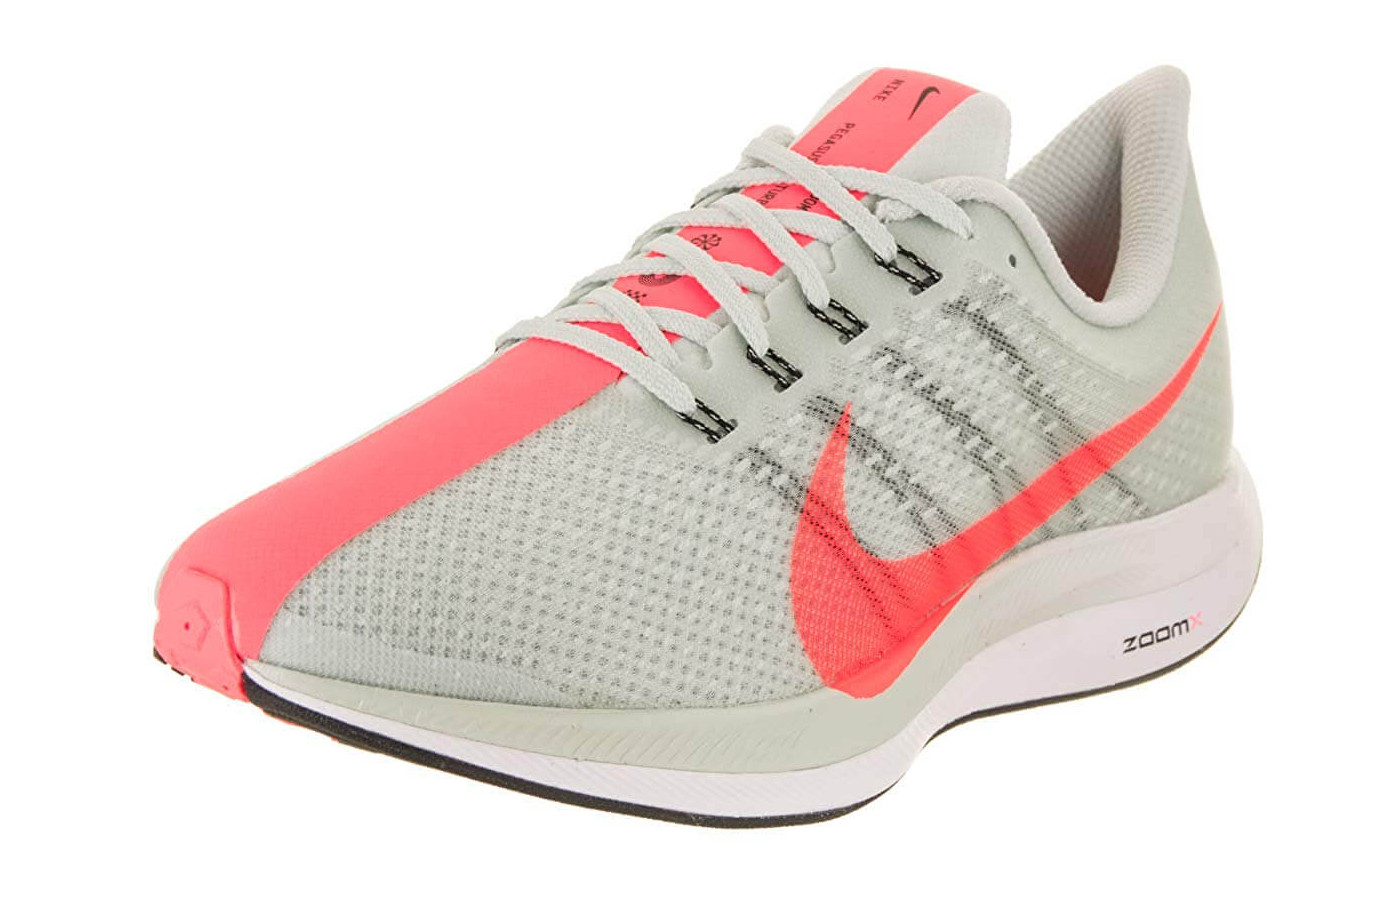 The Zoom Pegasus Turbo is available in several colorways for both men and women.